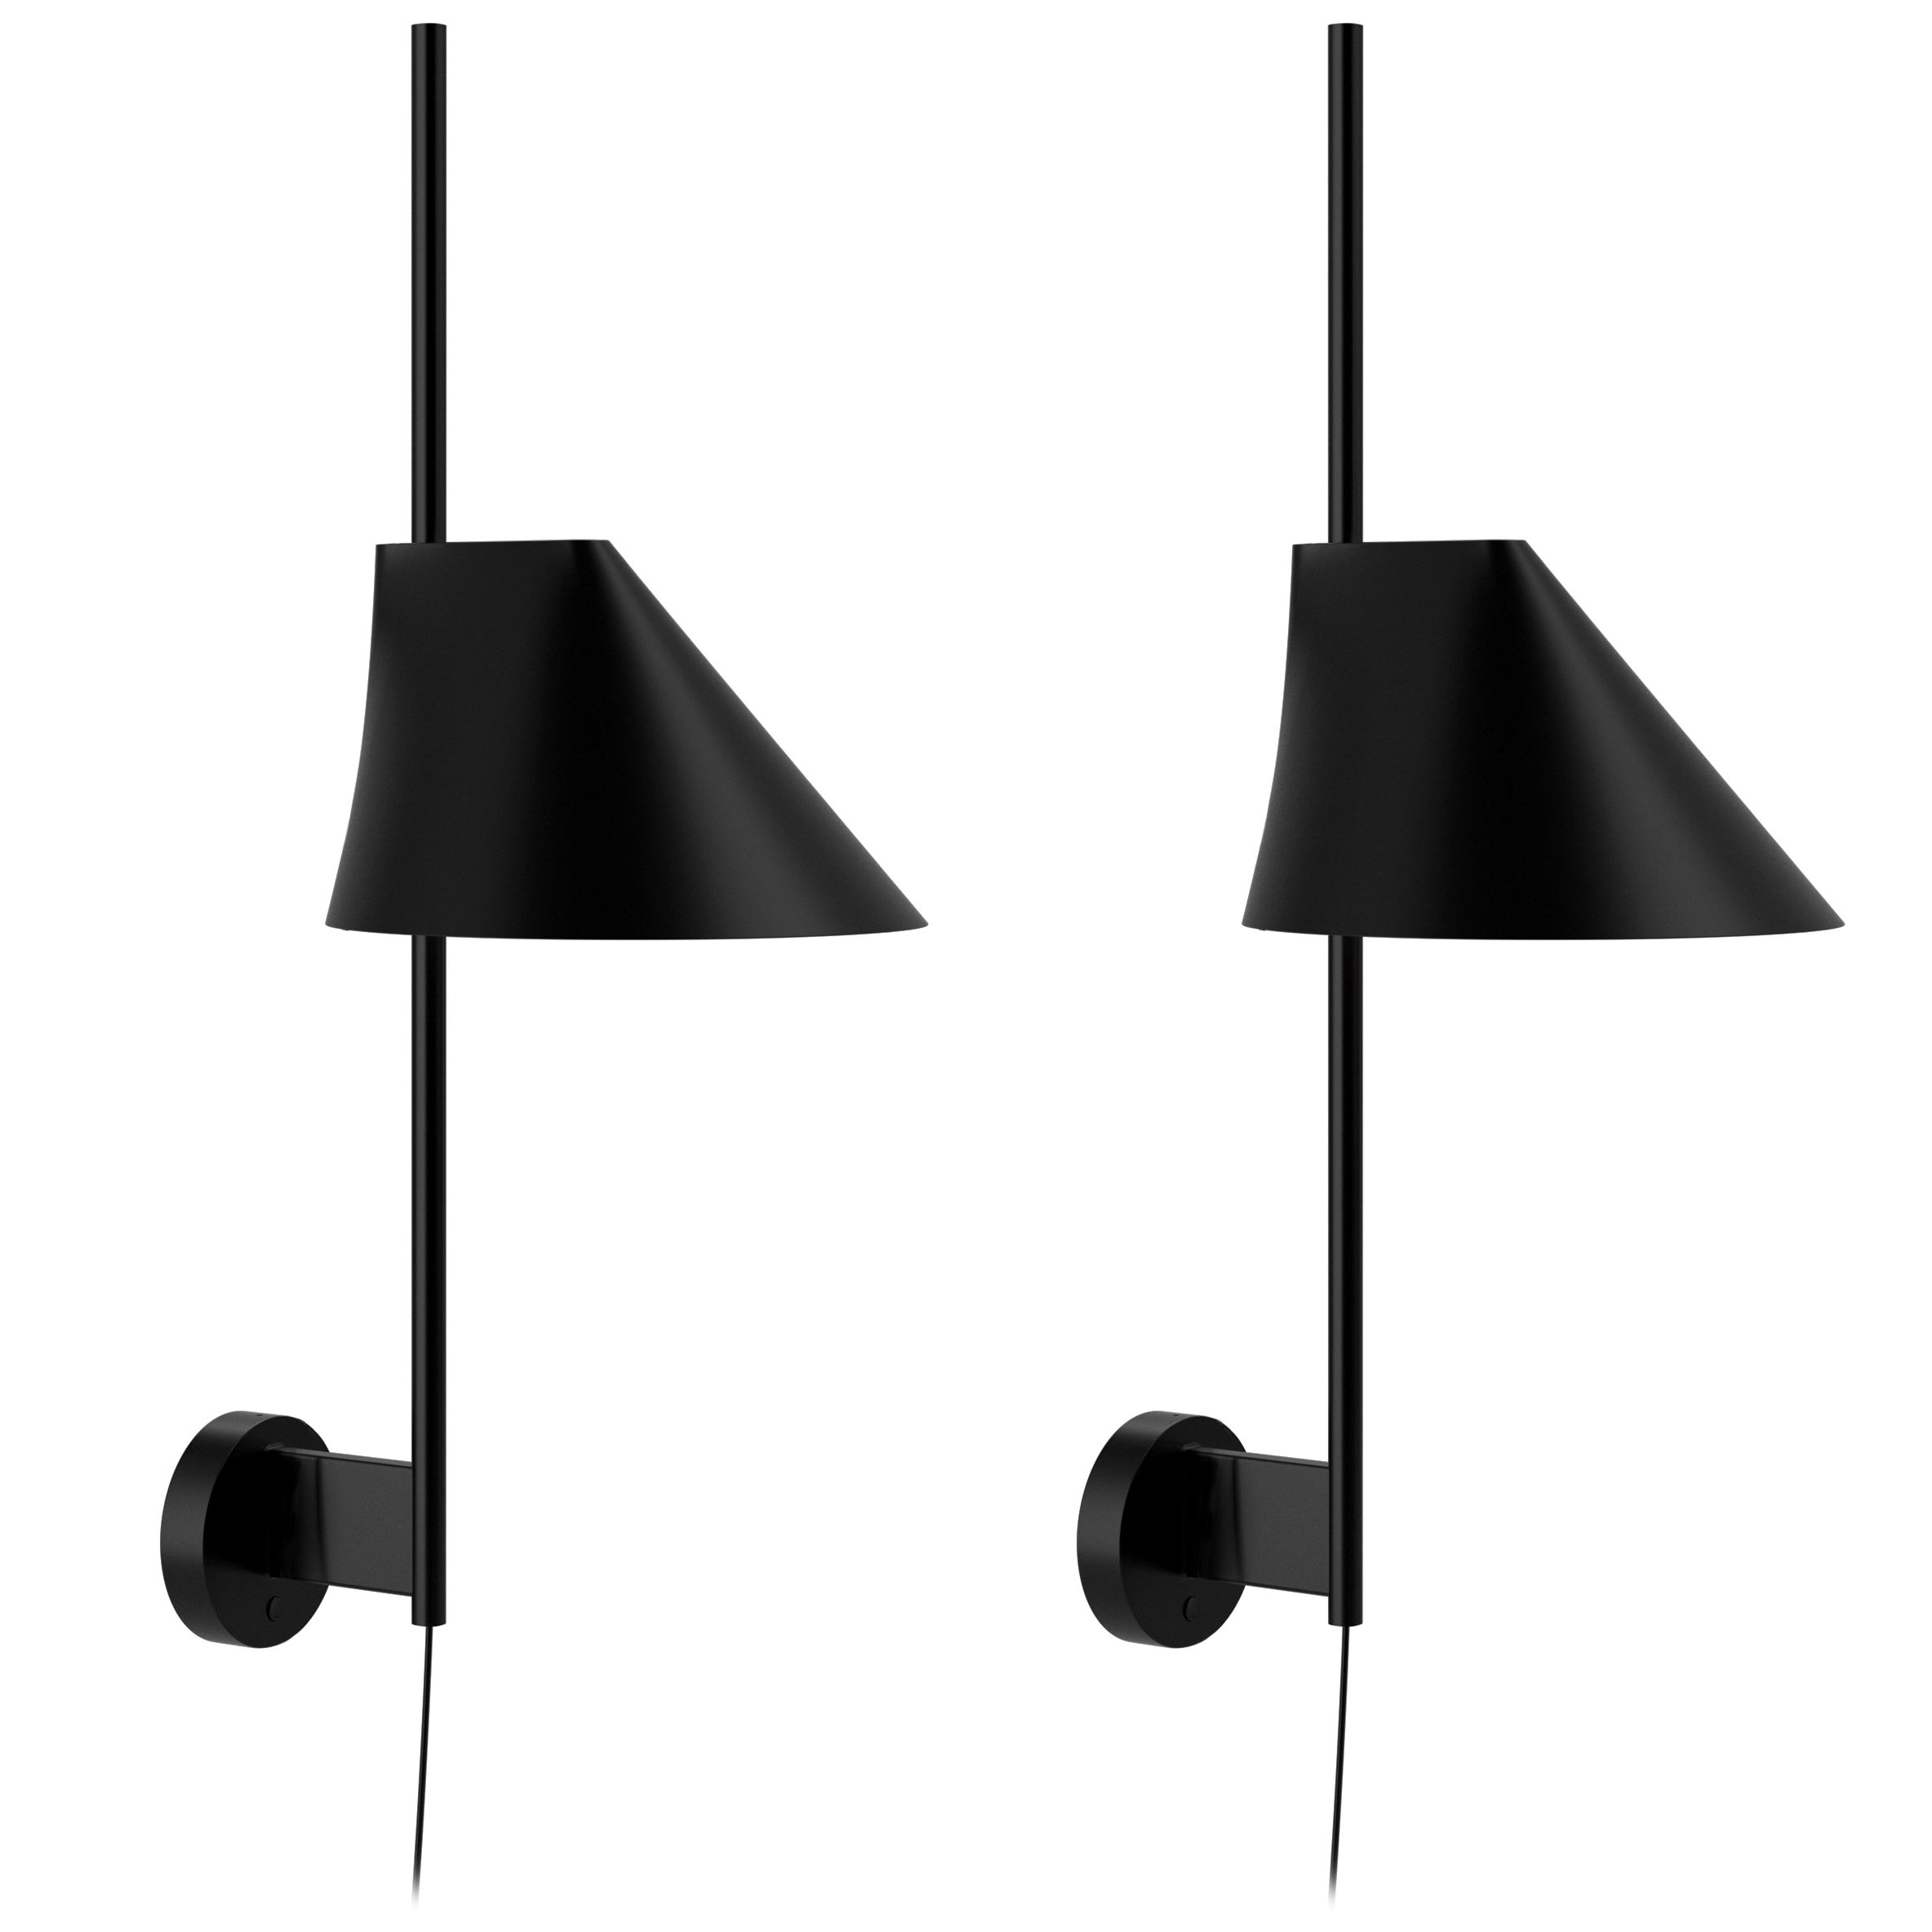 GamFratesi Black 'Yuh' Wall Light for Louis Poulsen